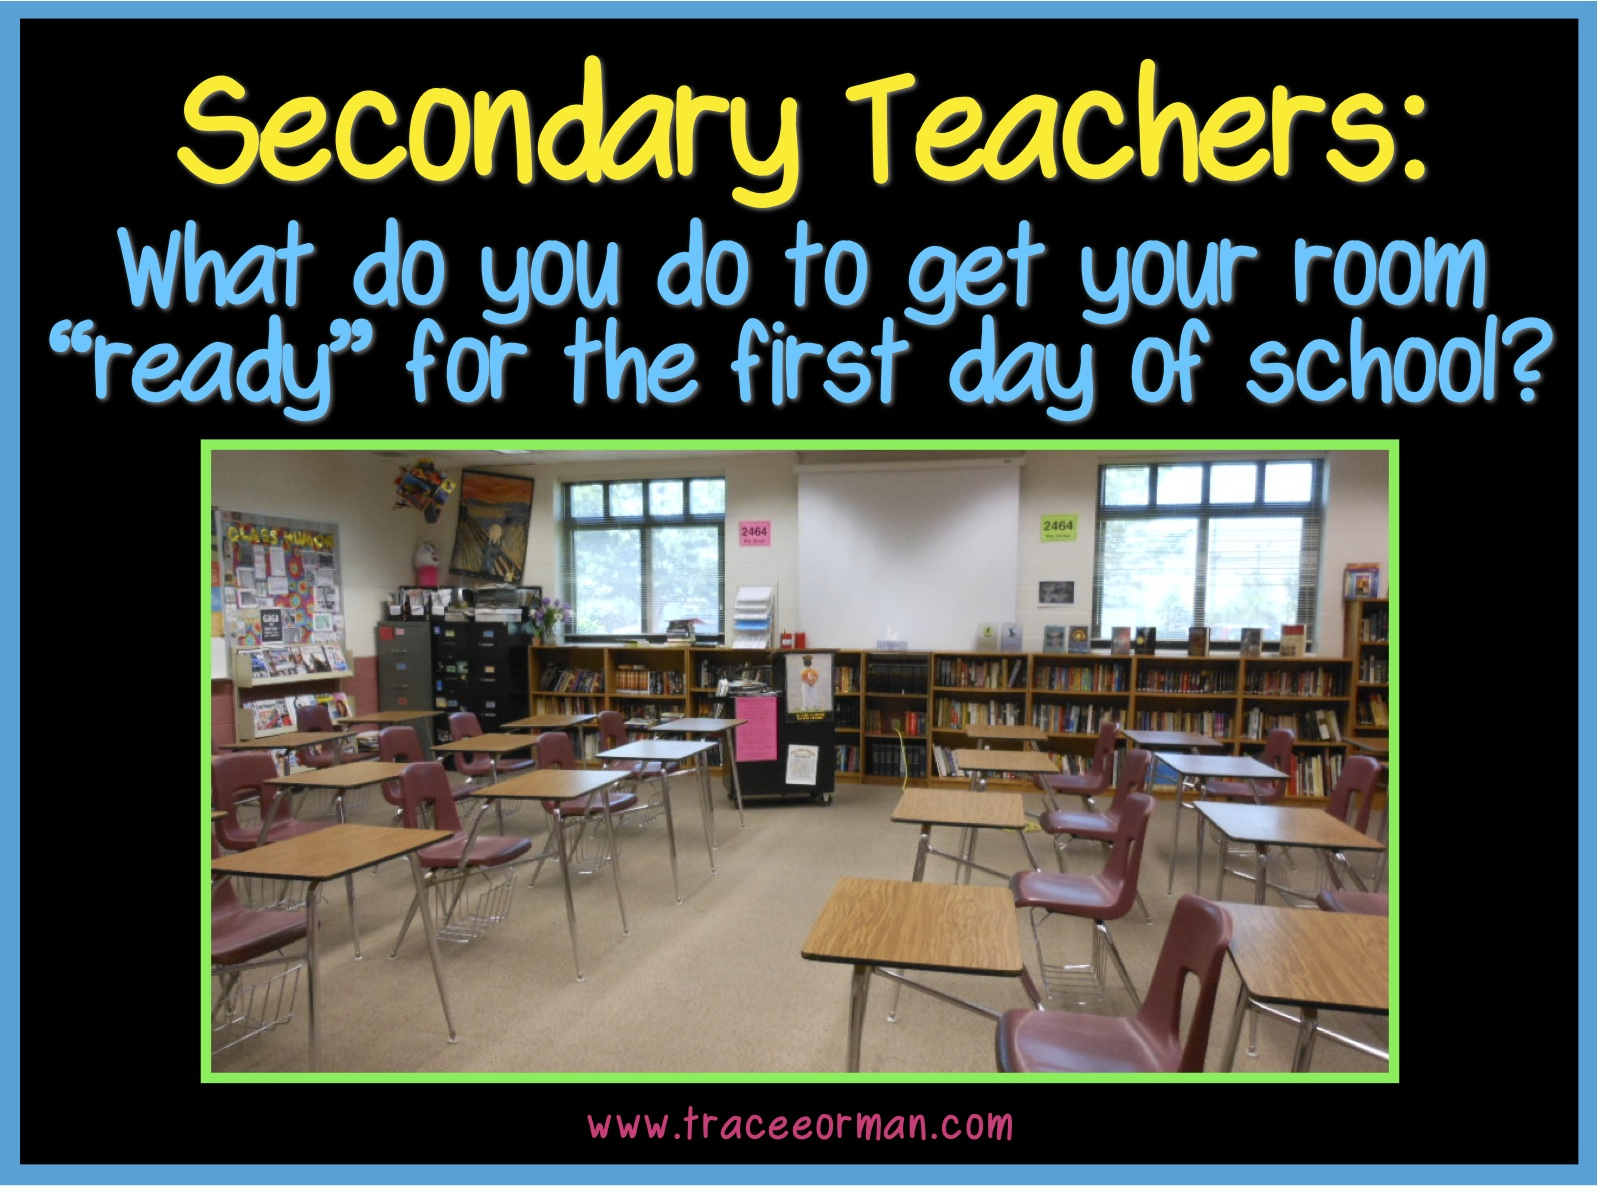 Classroom Management Ideas For High School ~ Teacher sol classroom organization tips from veteran teachers